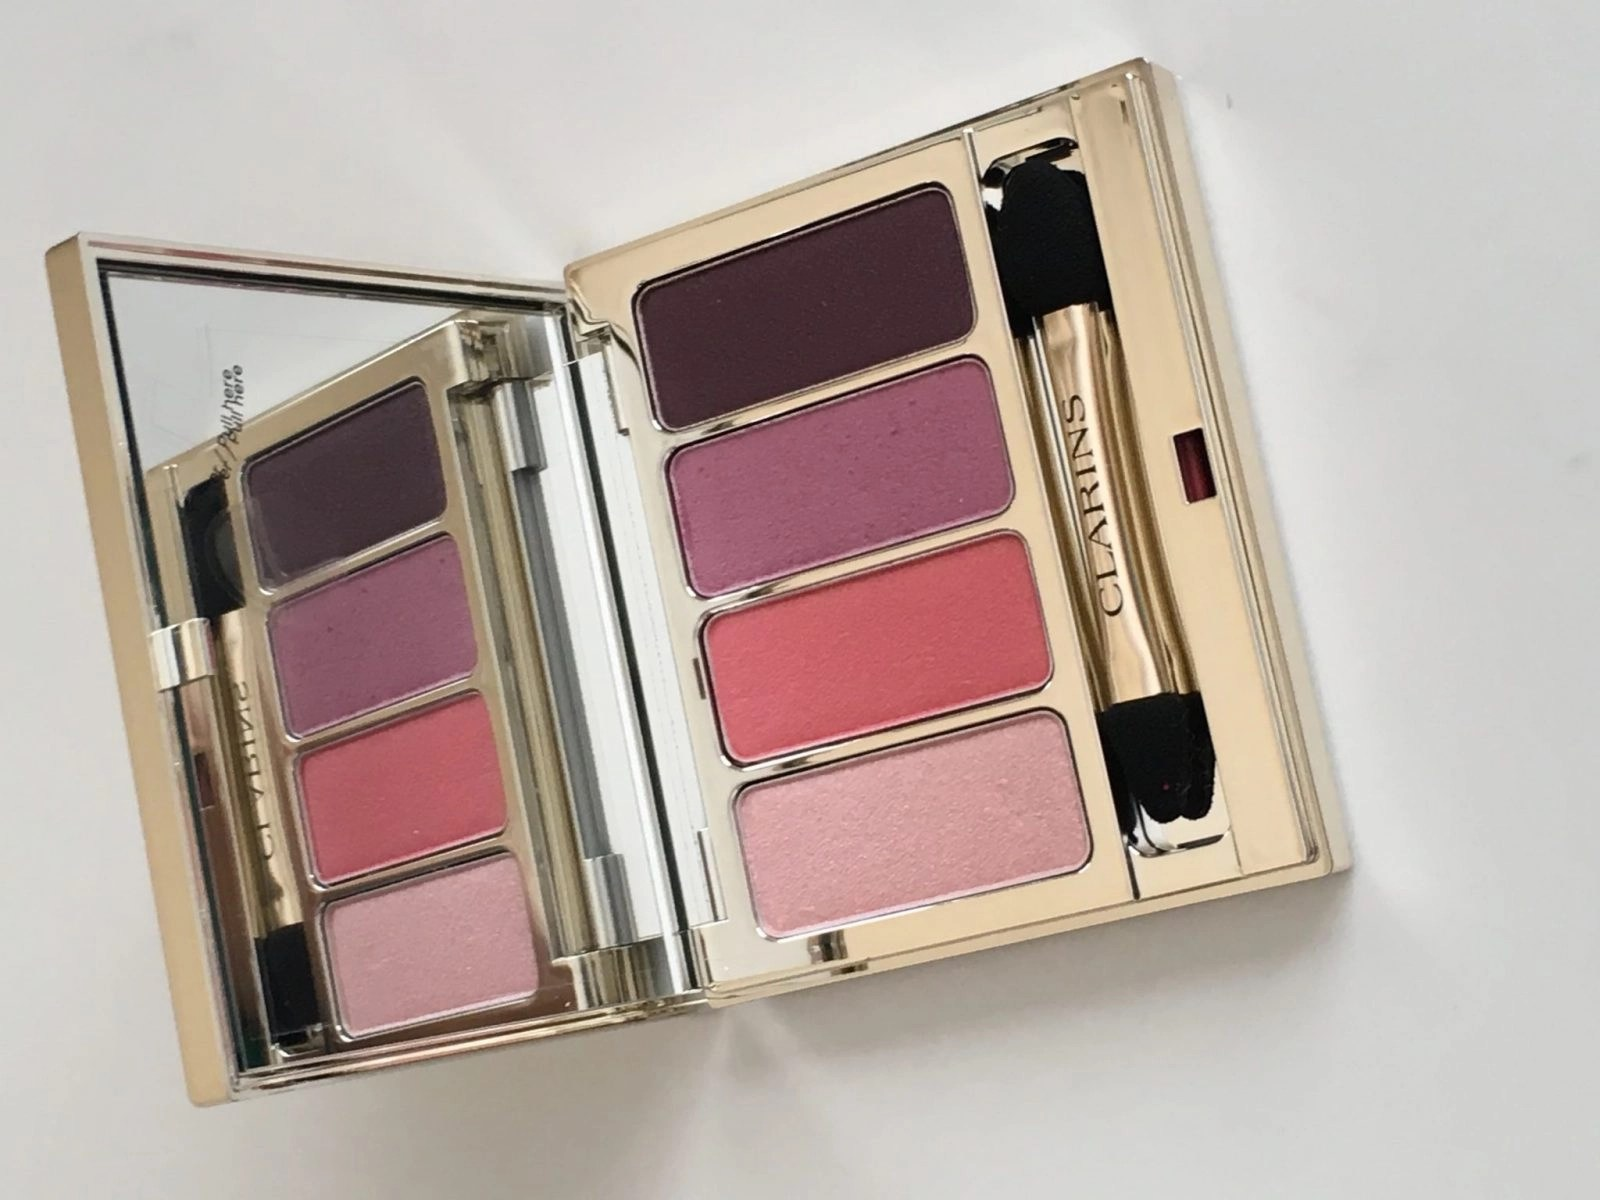 Clarins Eyeshadow Palette in Lovely Rose